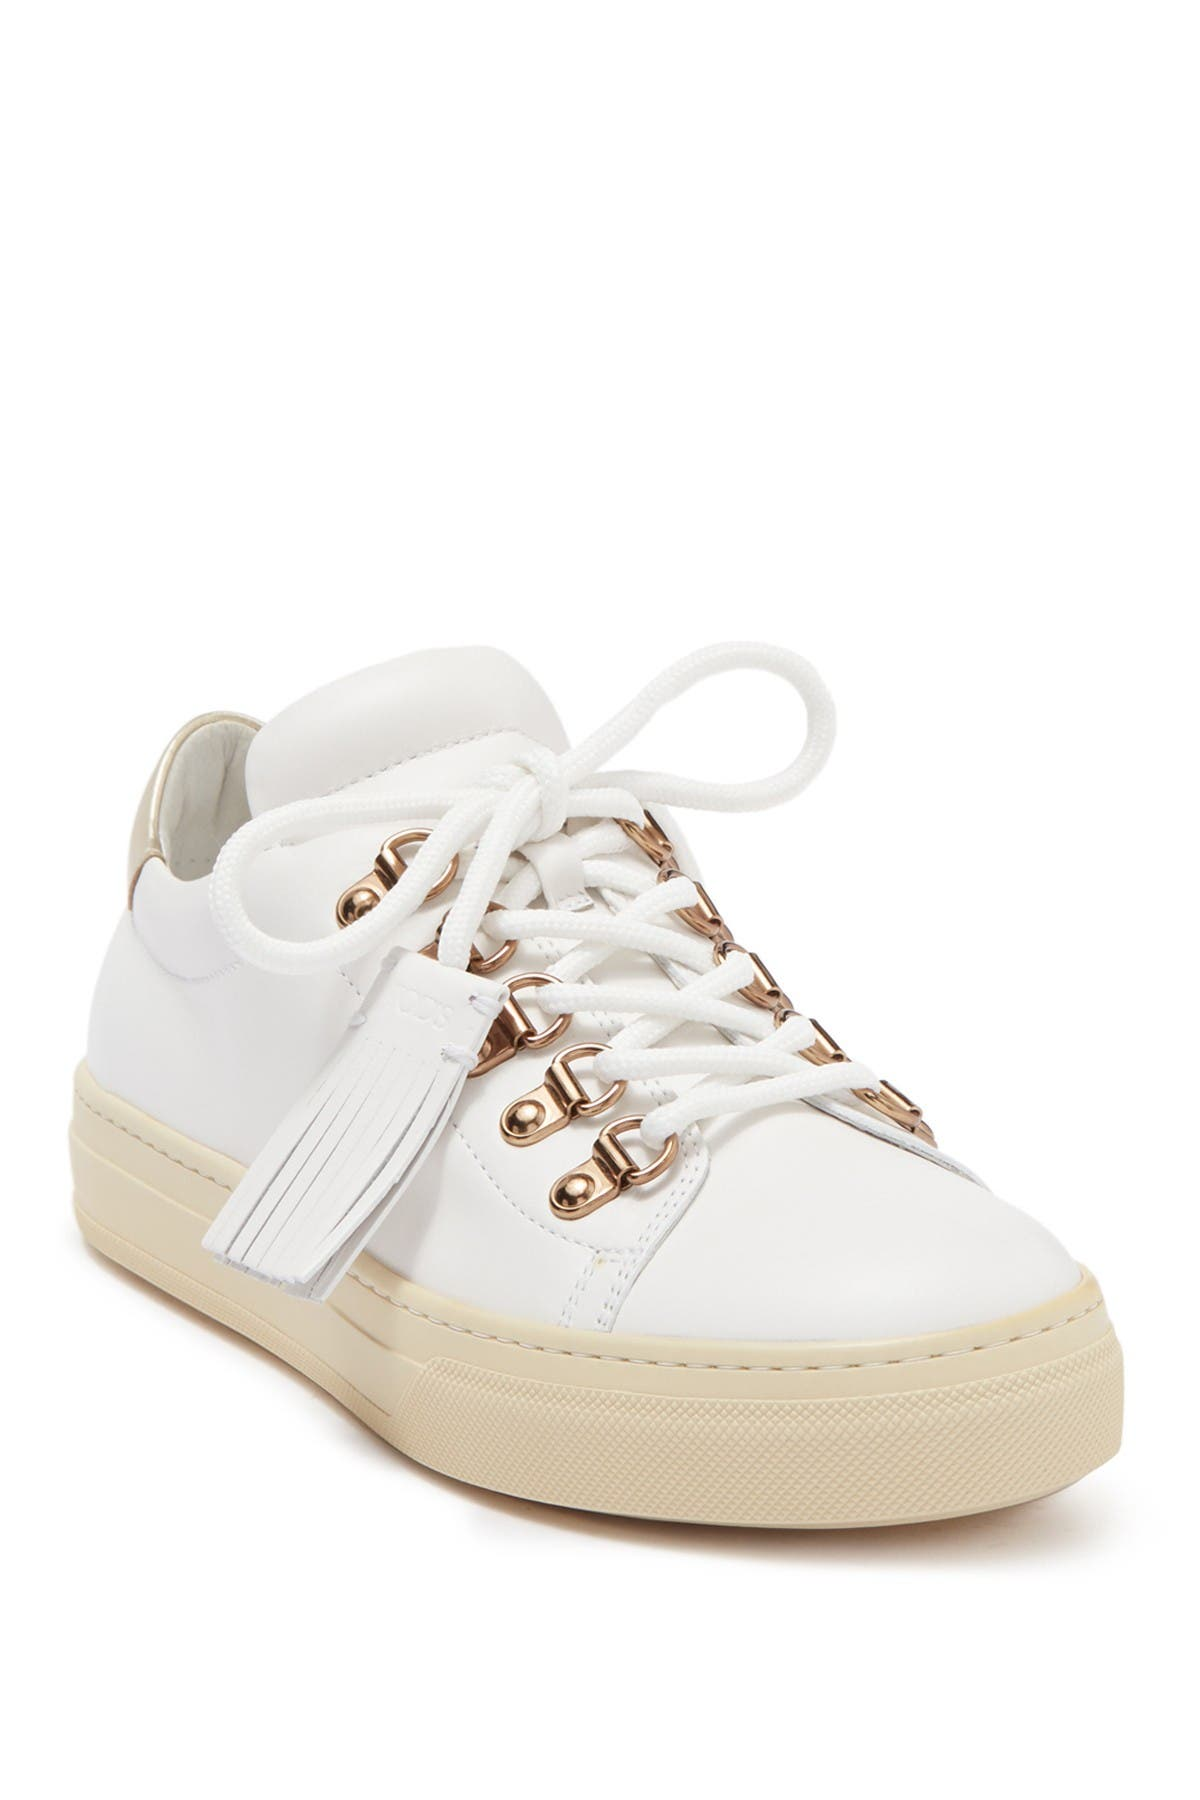 Image of Tod's Sportivo Fringe Leather Sneaker